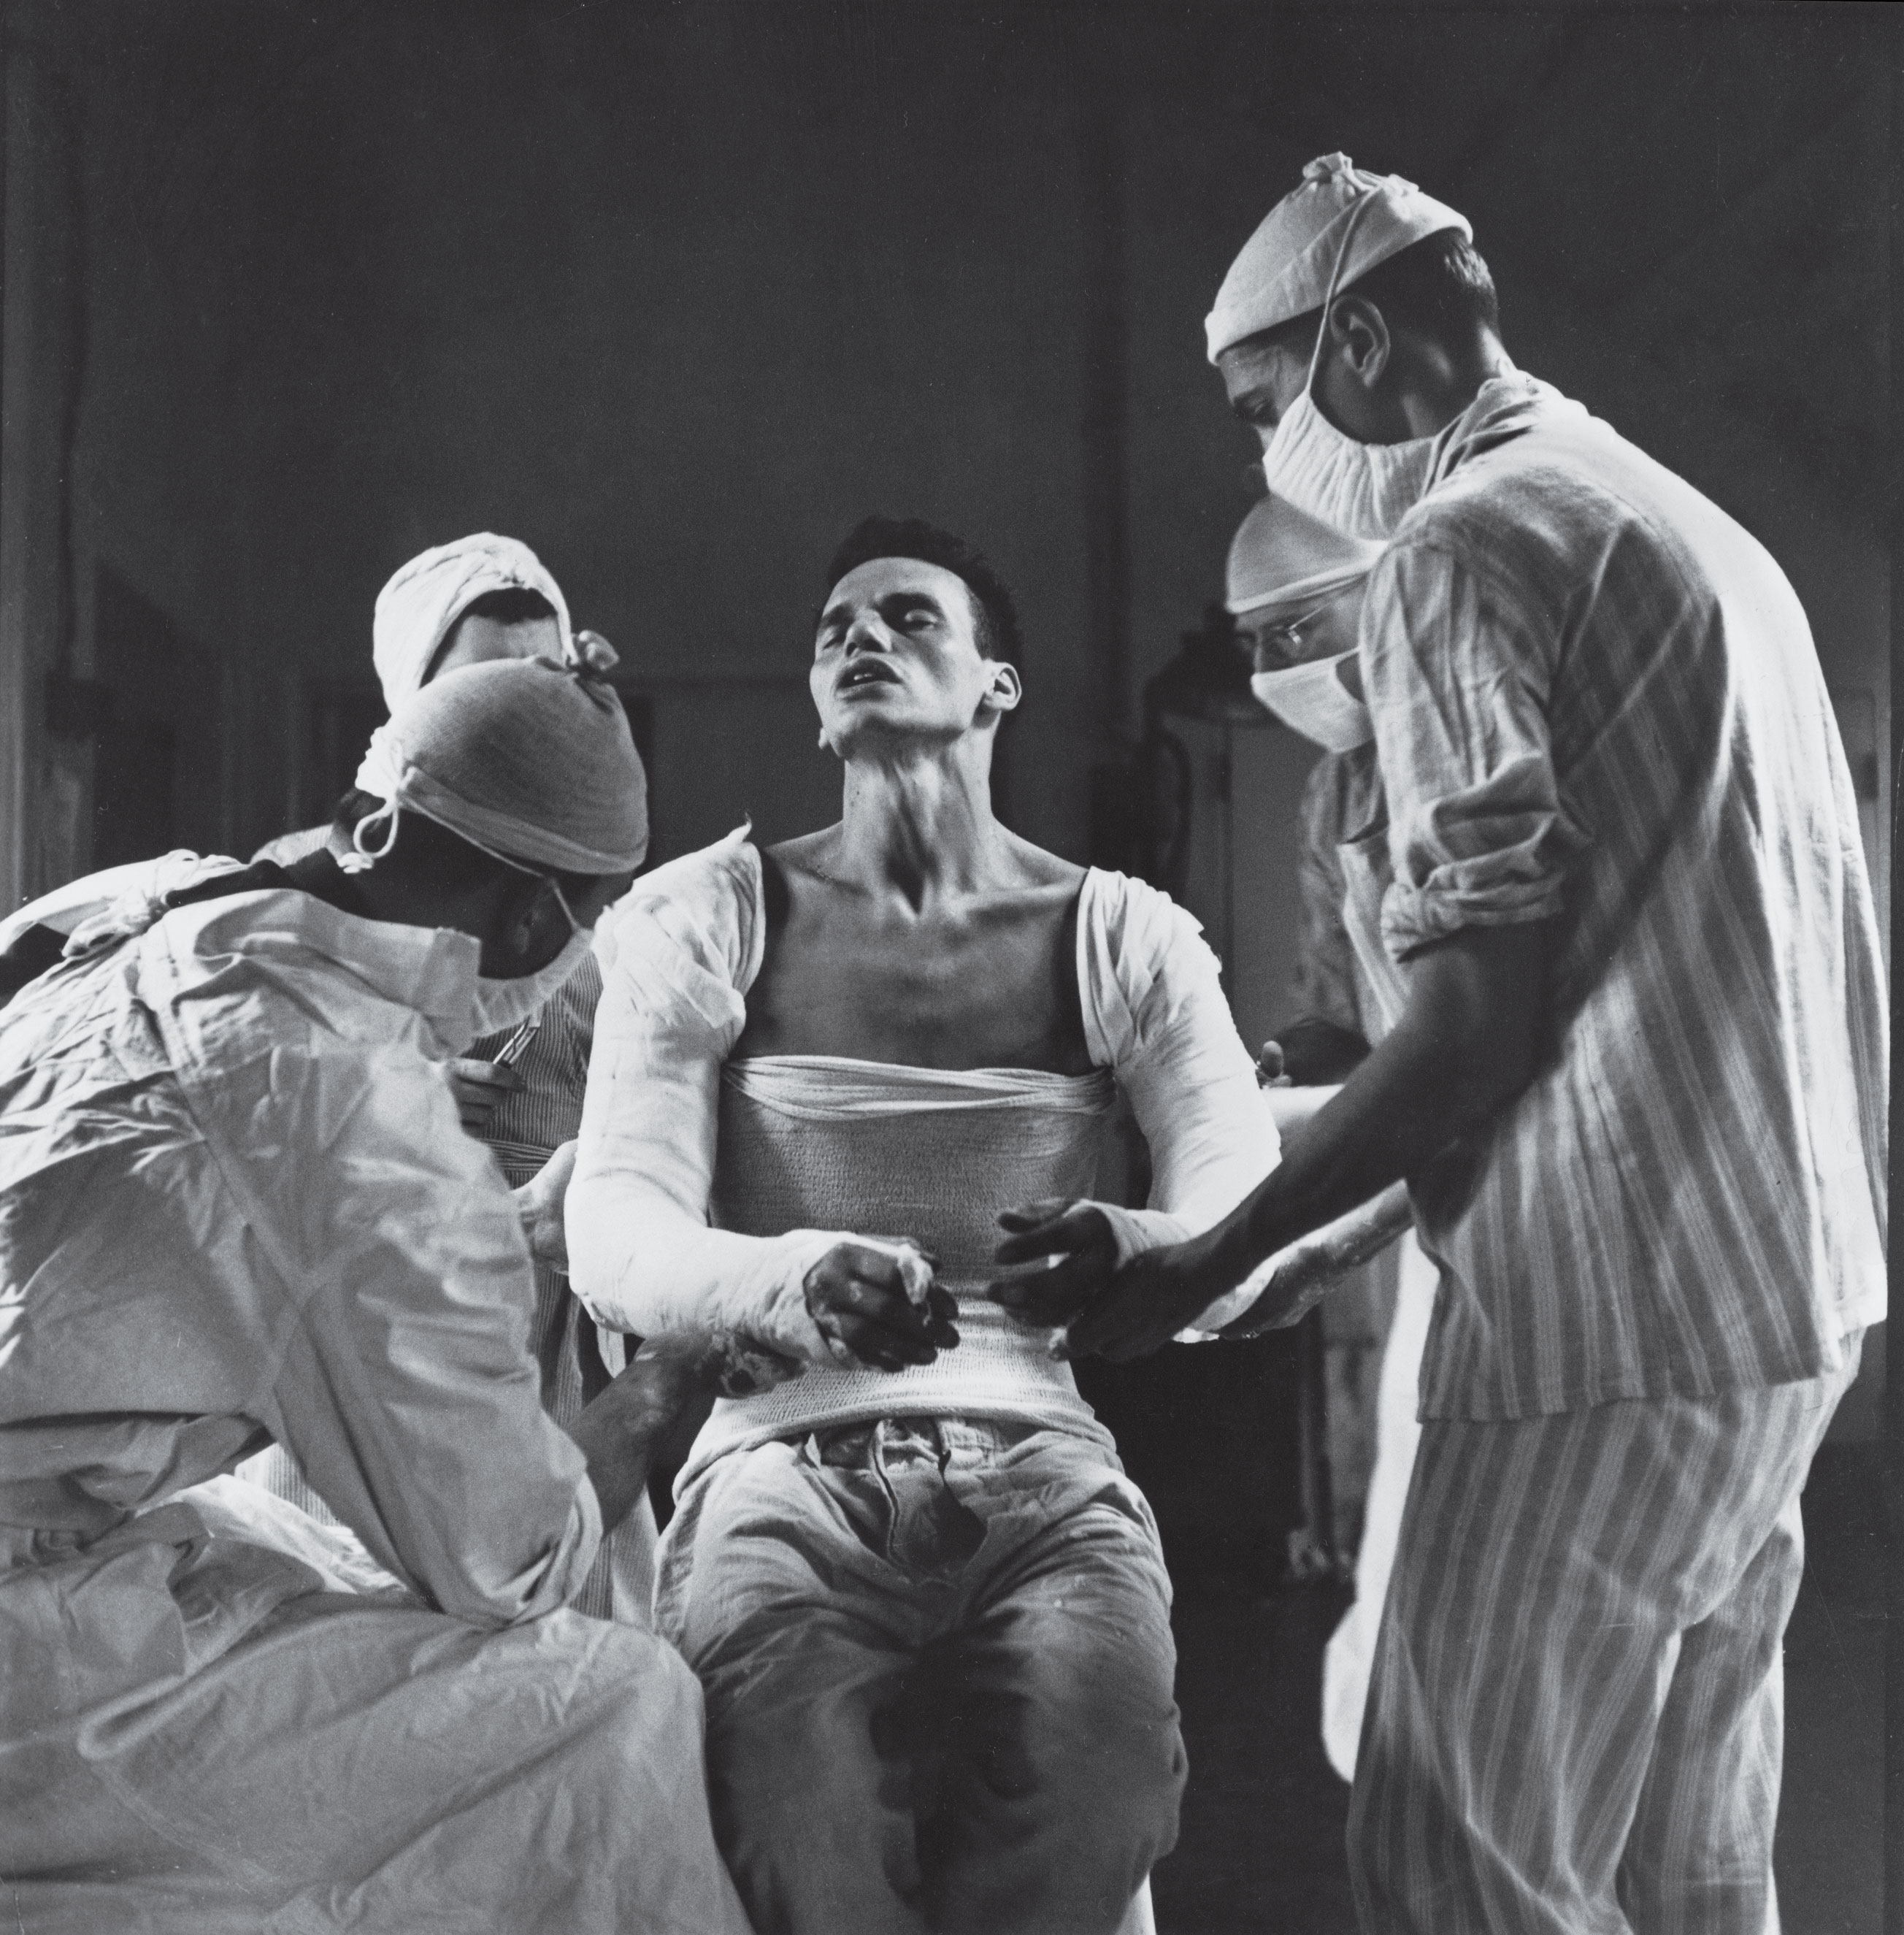 George Lott, 22, a medic attached to a battalion aid station of the 137th Infantry Regiment in Patton's Third Army, was wounded in both arms by German mortar fire in France in 1944. Here, he suffers as doctors mold a plaster cast to his body.